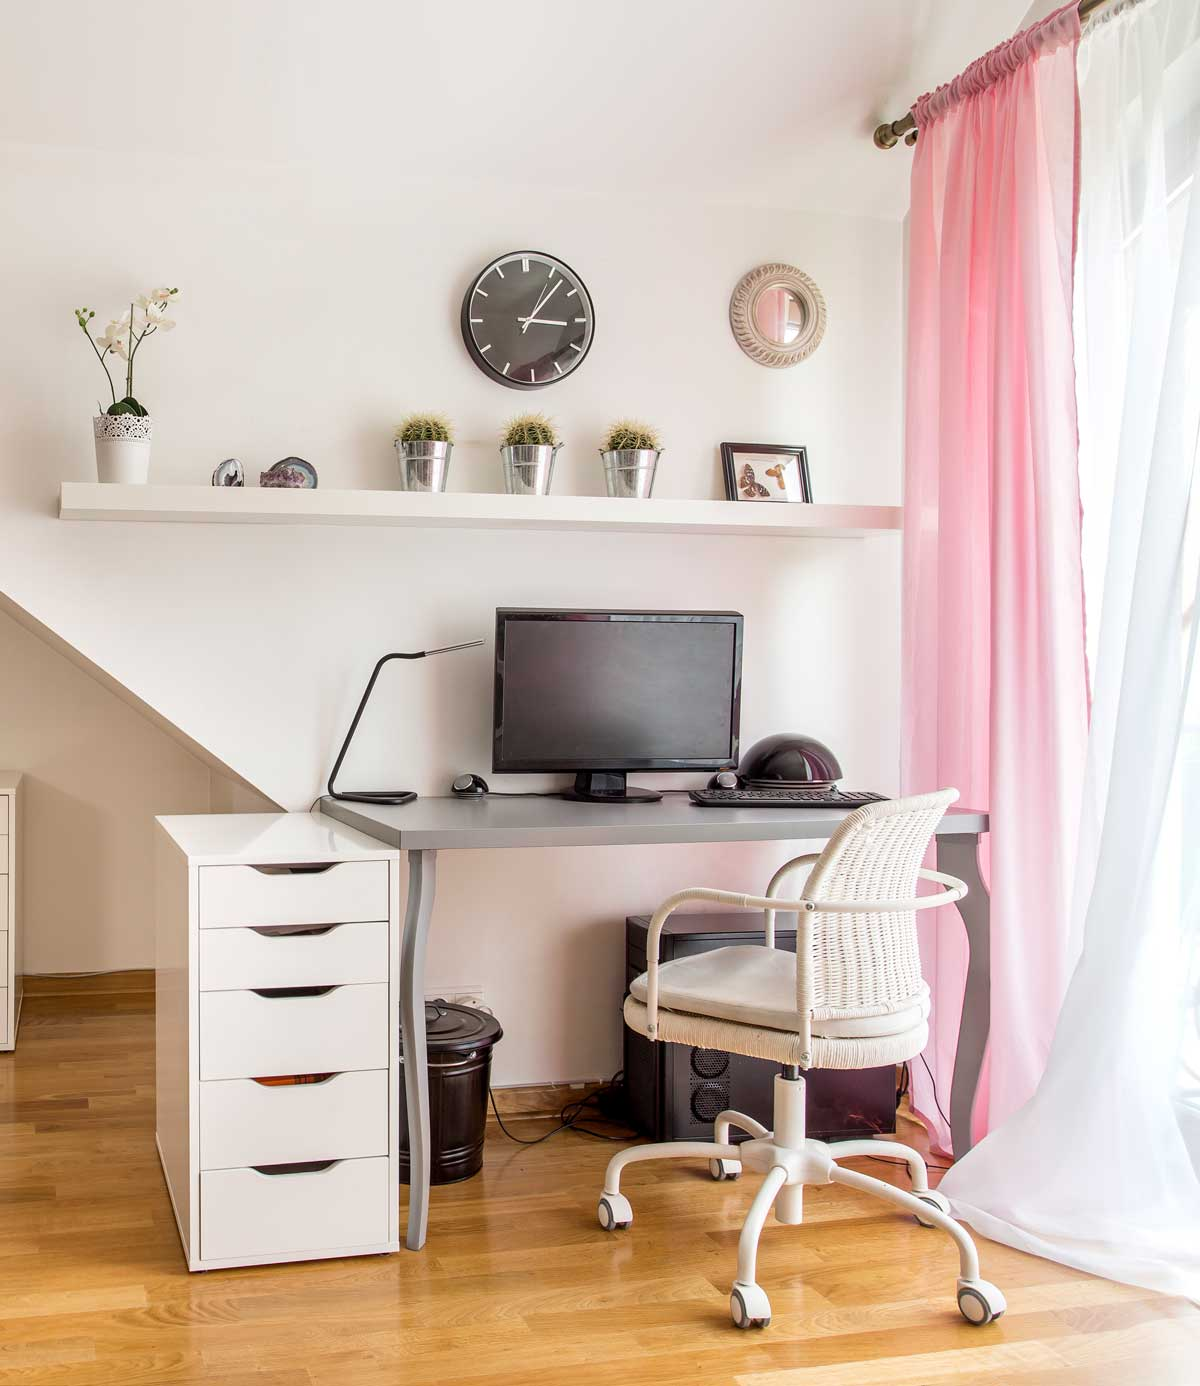 Home Office Organizing services